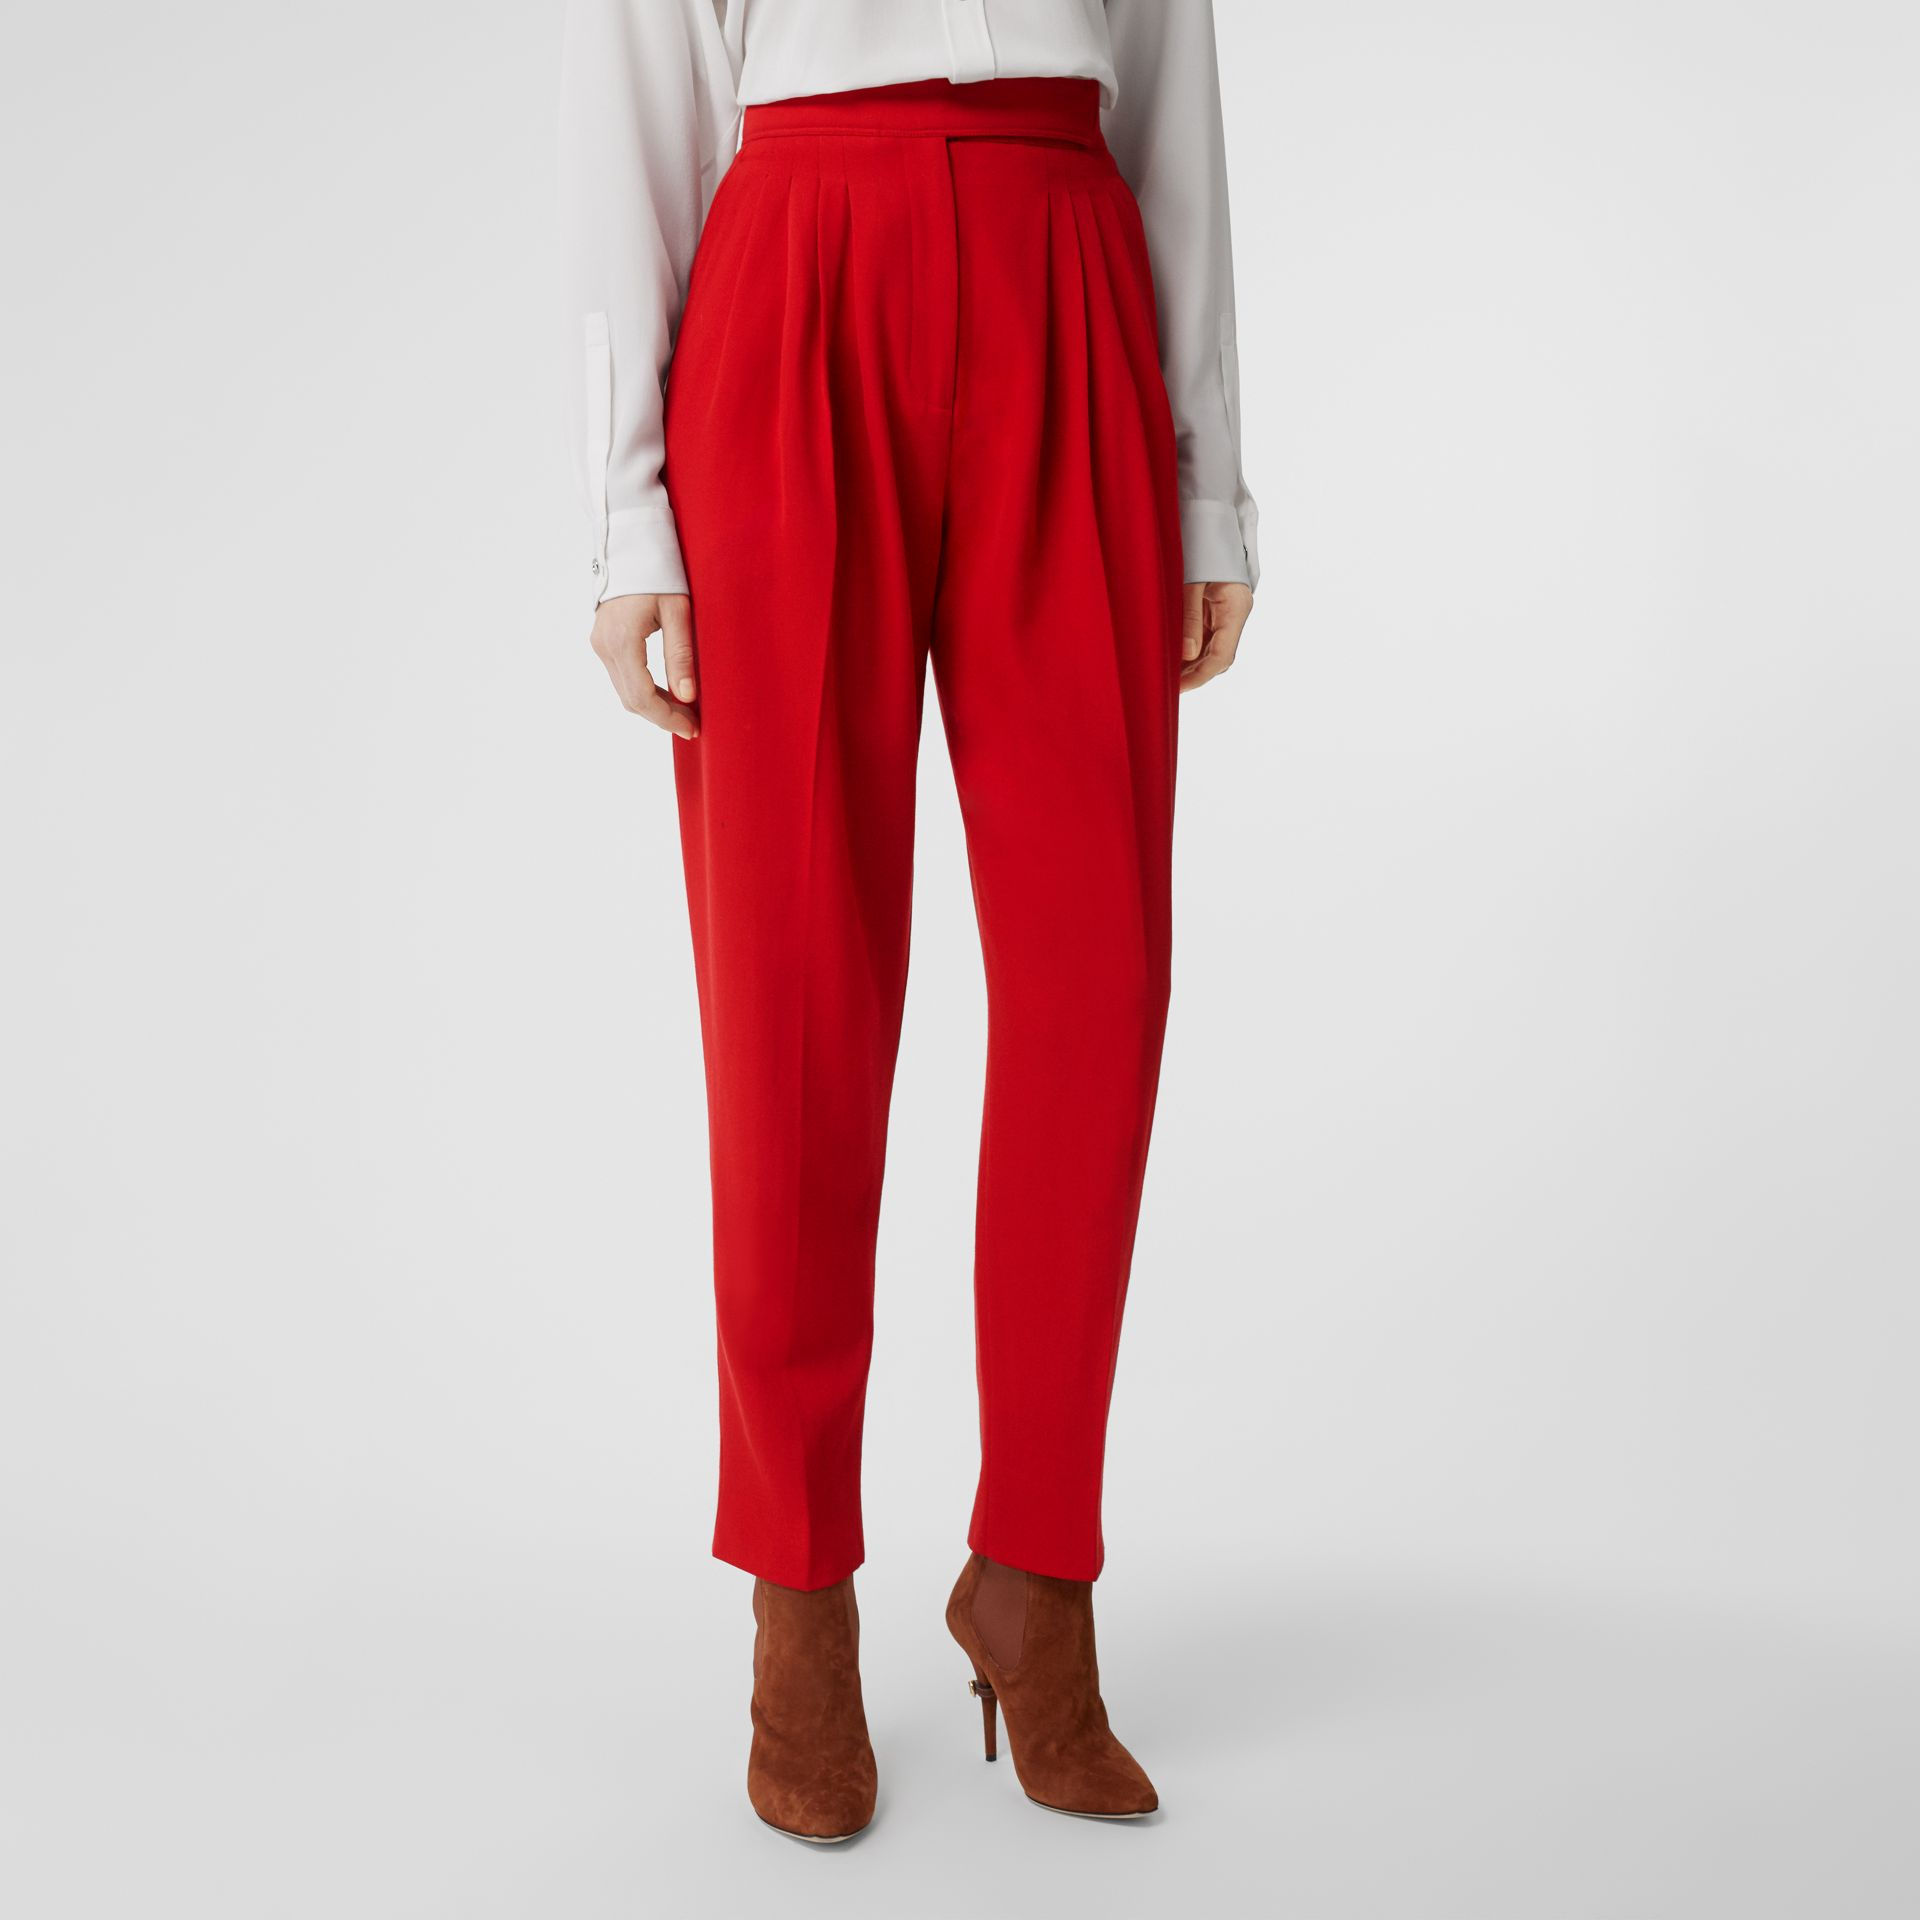 Pleat Detail Wool Tailored Trousers in Bright Red - Women | Burberry Australia - gallery image 4